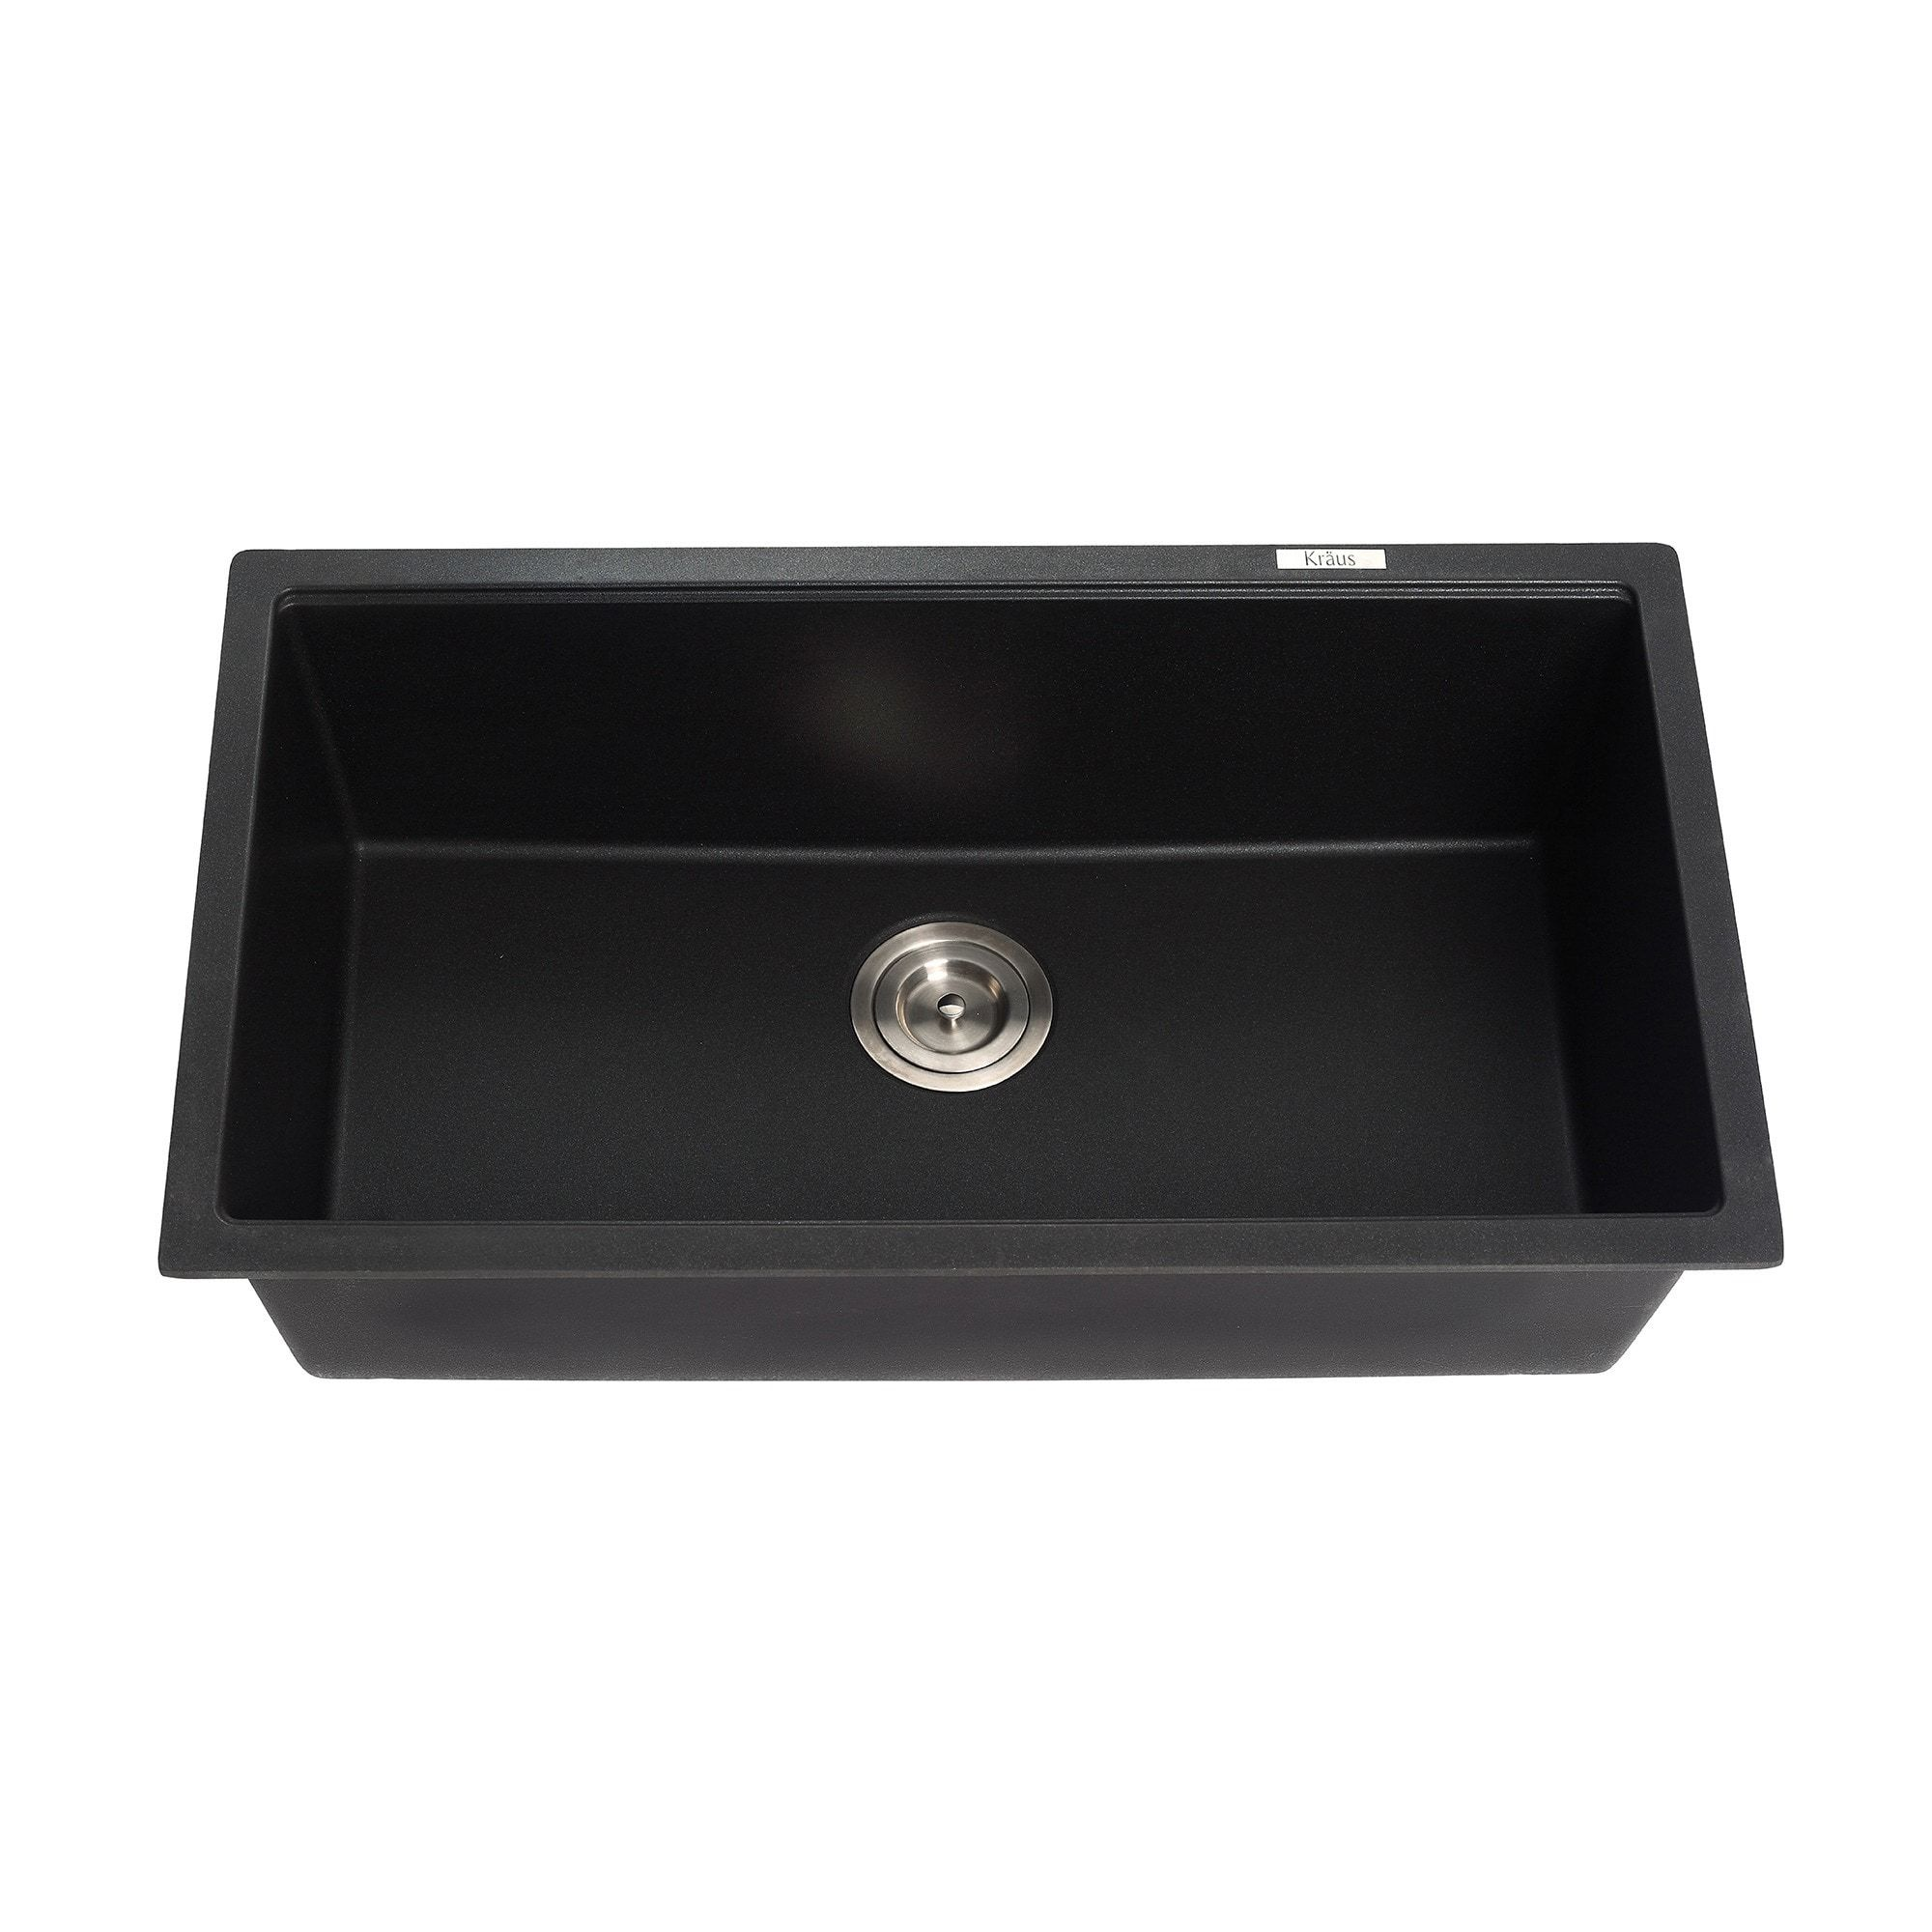 Overstock Com Online Shopping Bedding Furniture Electronics Jewelry Clothing More Single Basin Kitchen Sink Composite Kitchen Sinks Sink